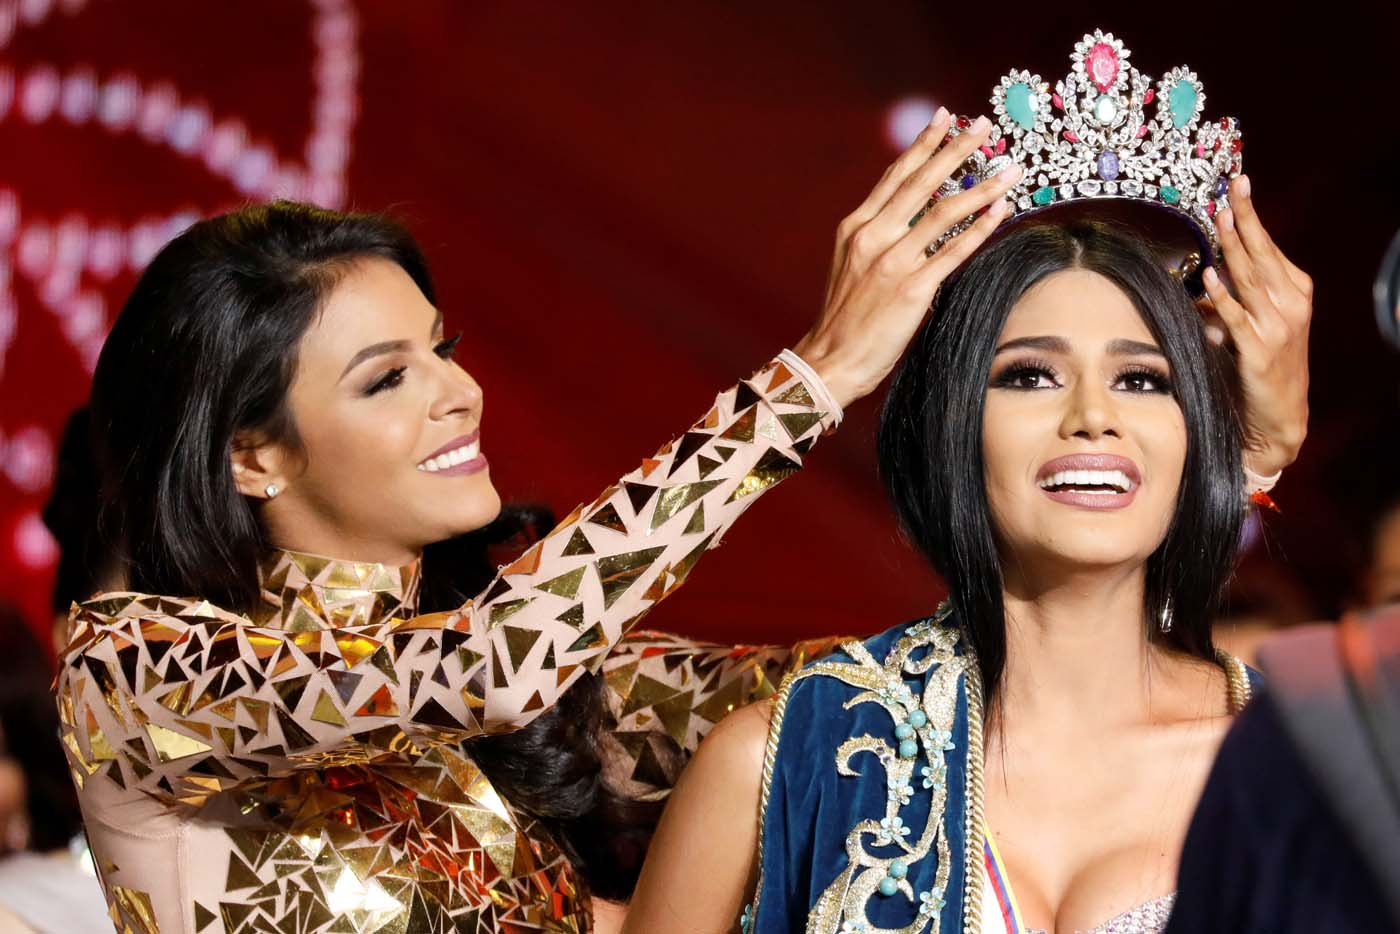 Miss Venezuela: Ugly corruption eclipses beauty